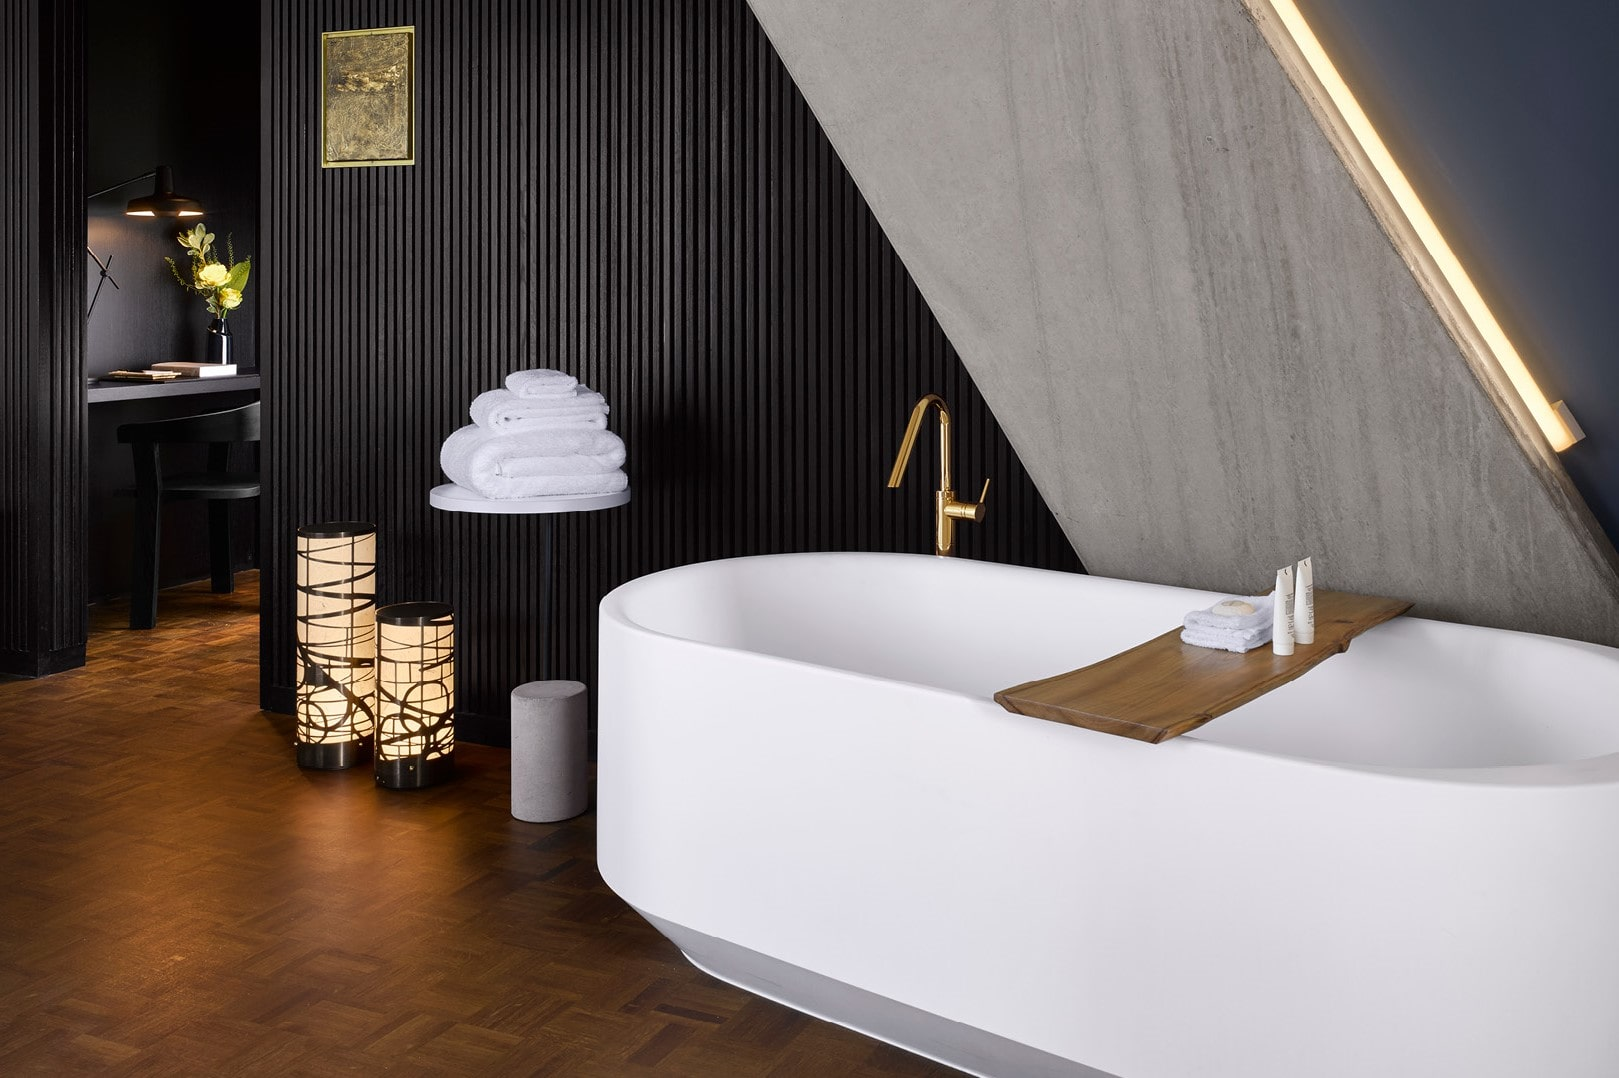 large-bathtub-in-japanese-themed-nobu-hotel-quirky-london-hotels